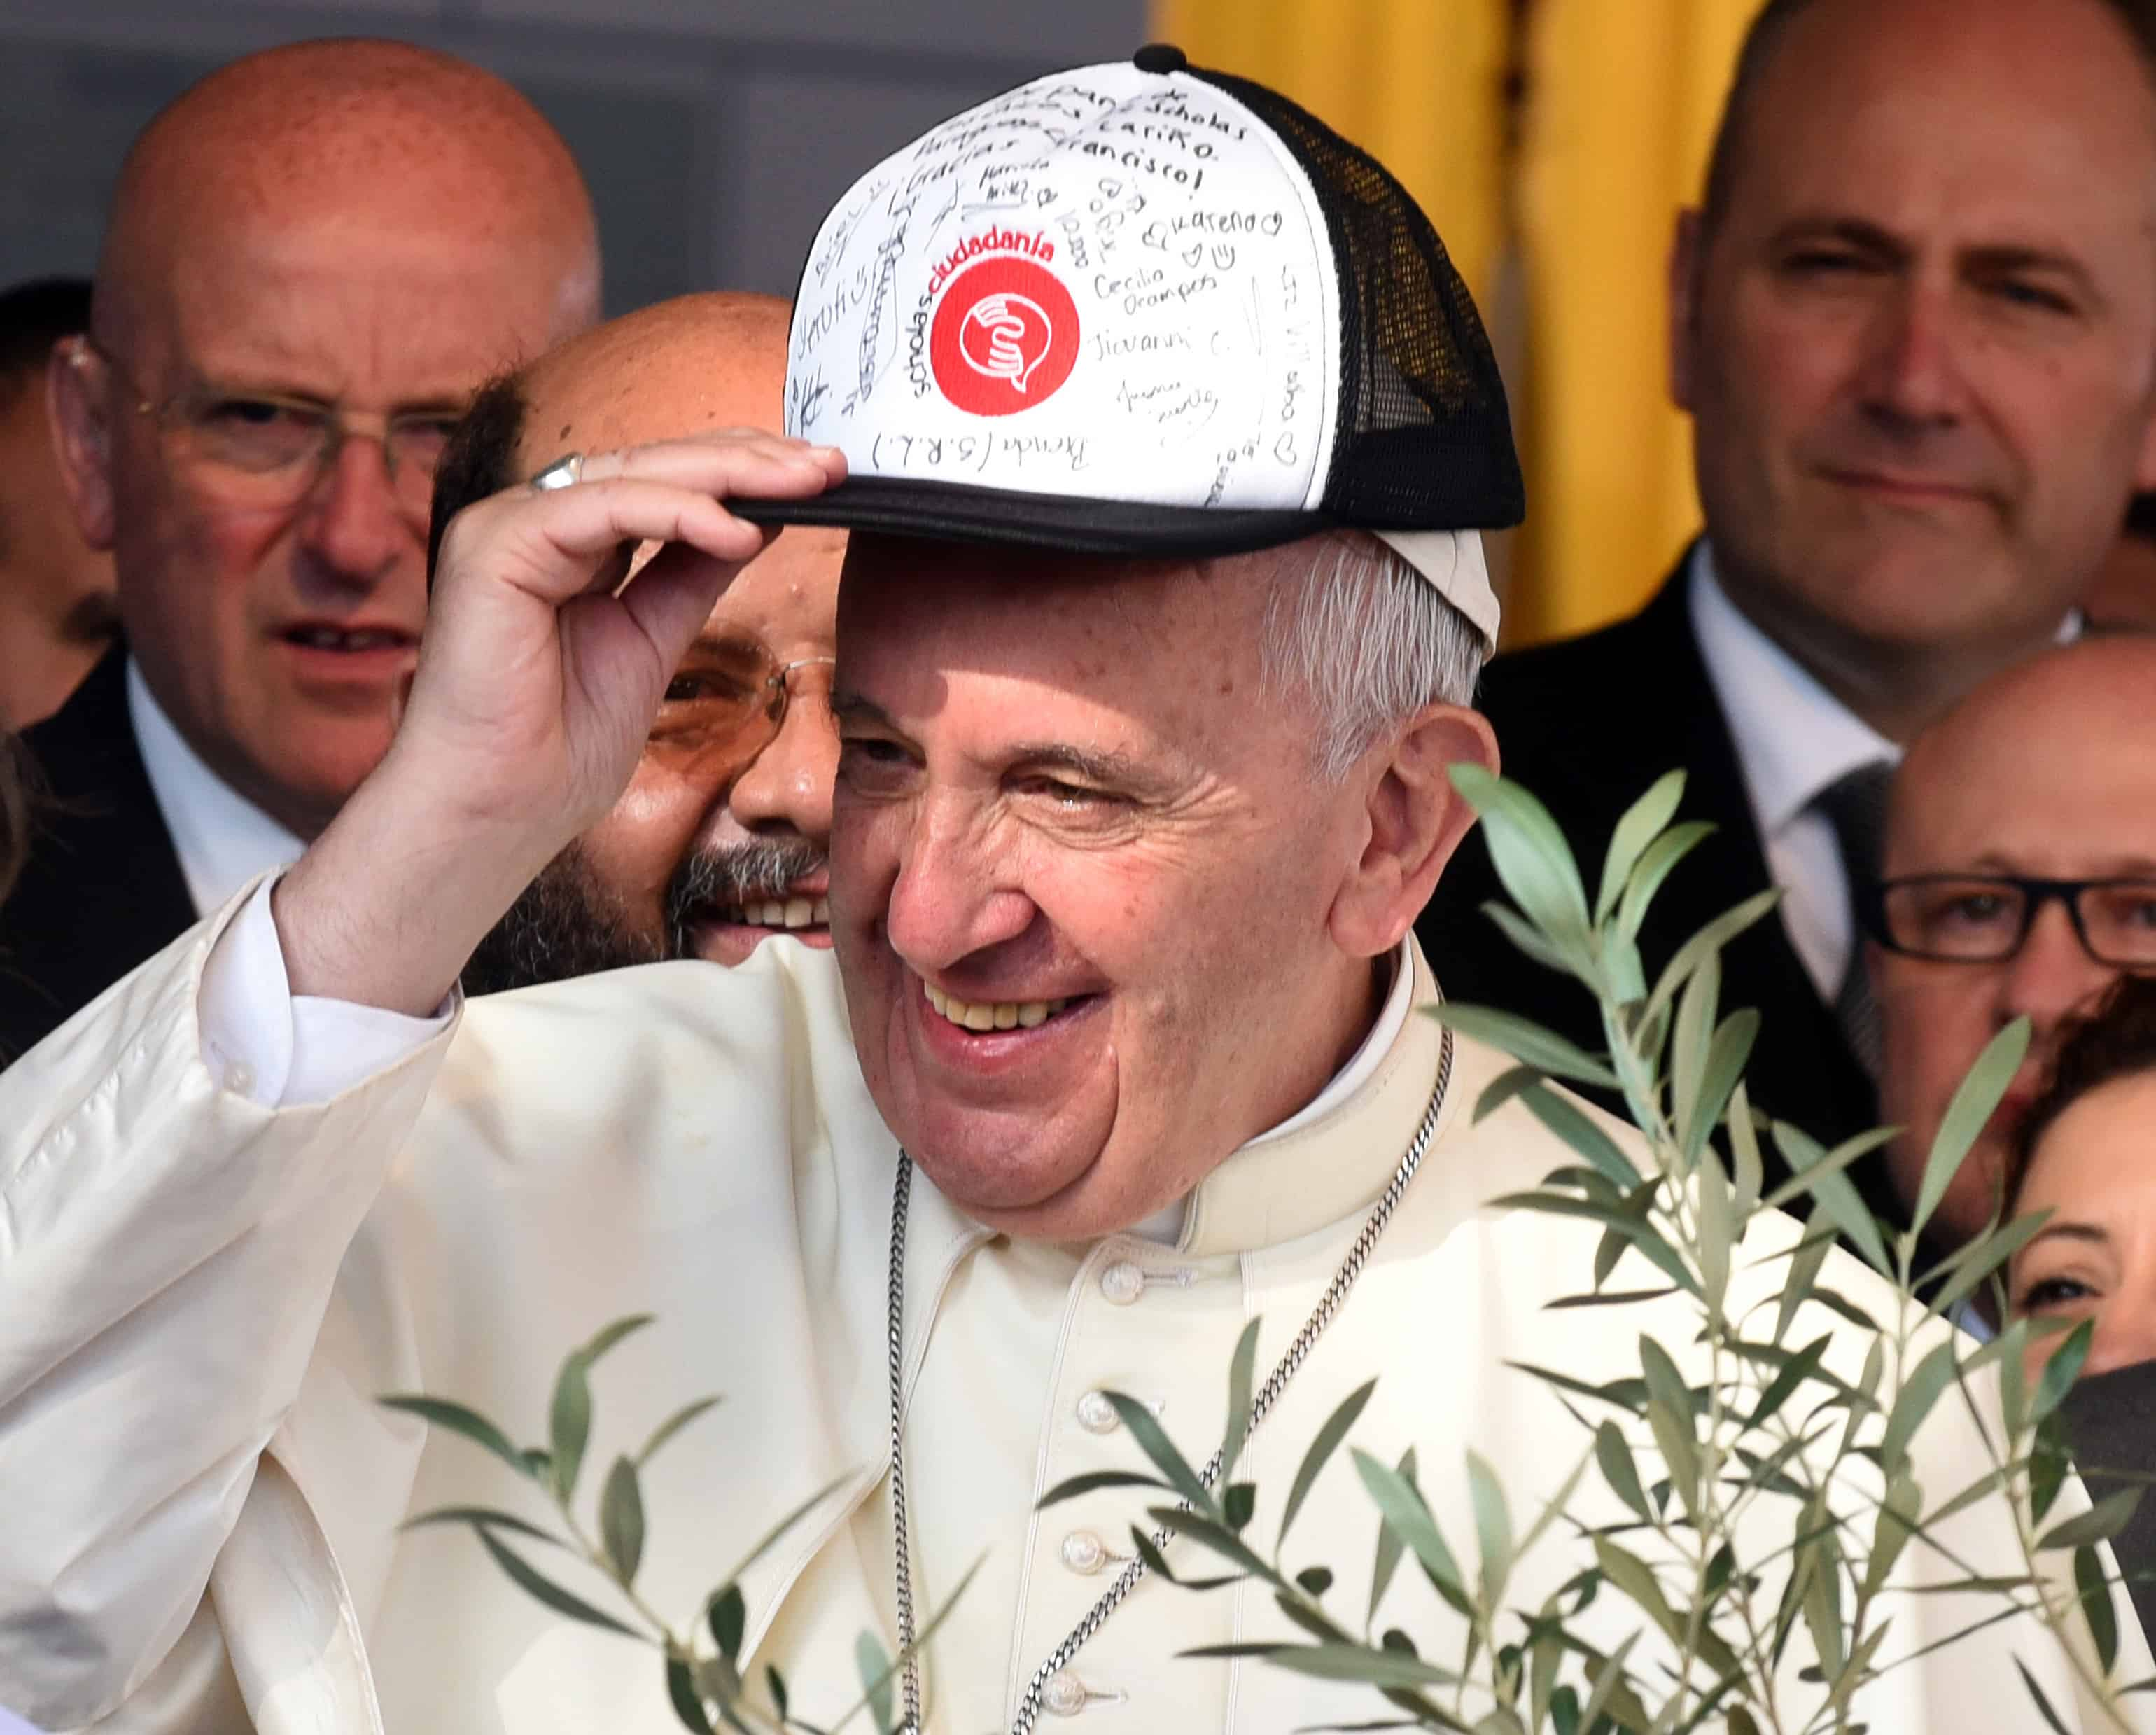 Pope Francis wears a cap signed by residents of Bañado Norte during his visit in Asunción.